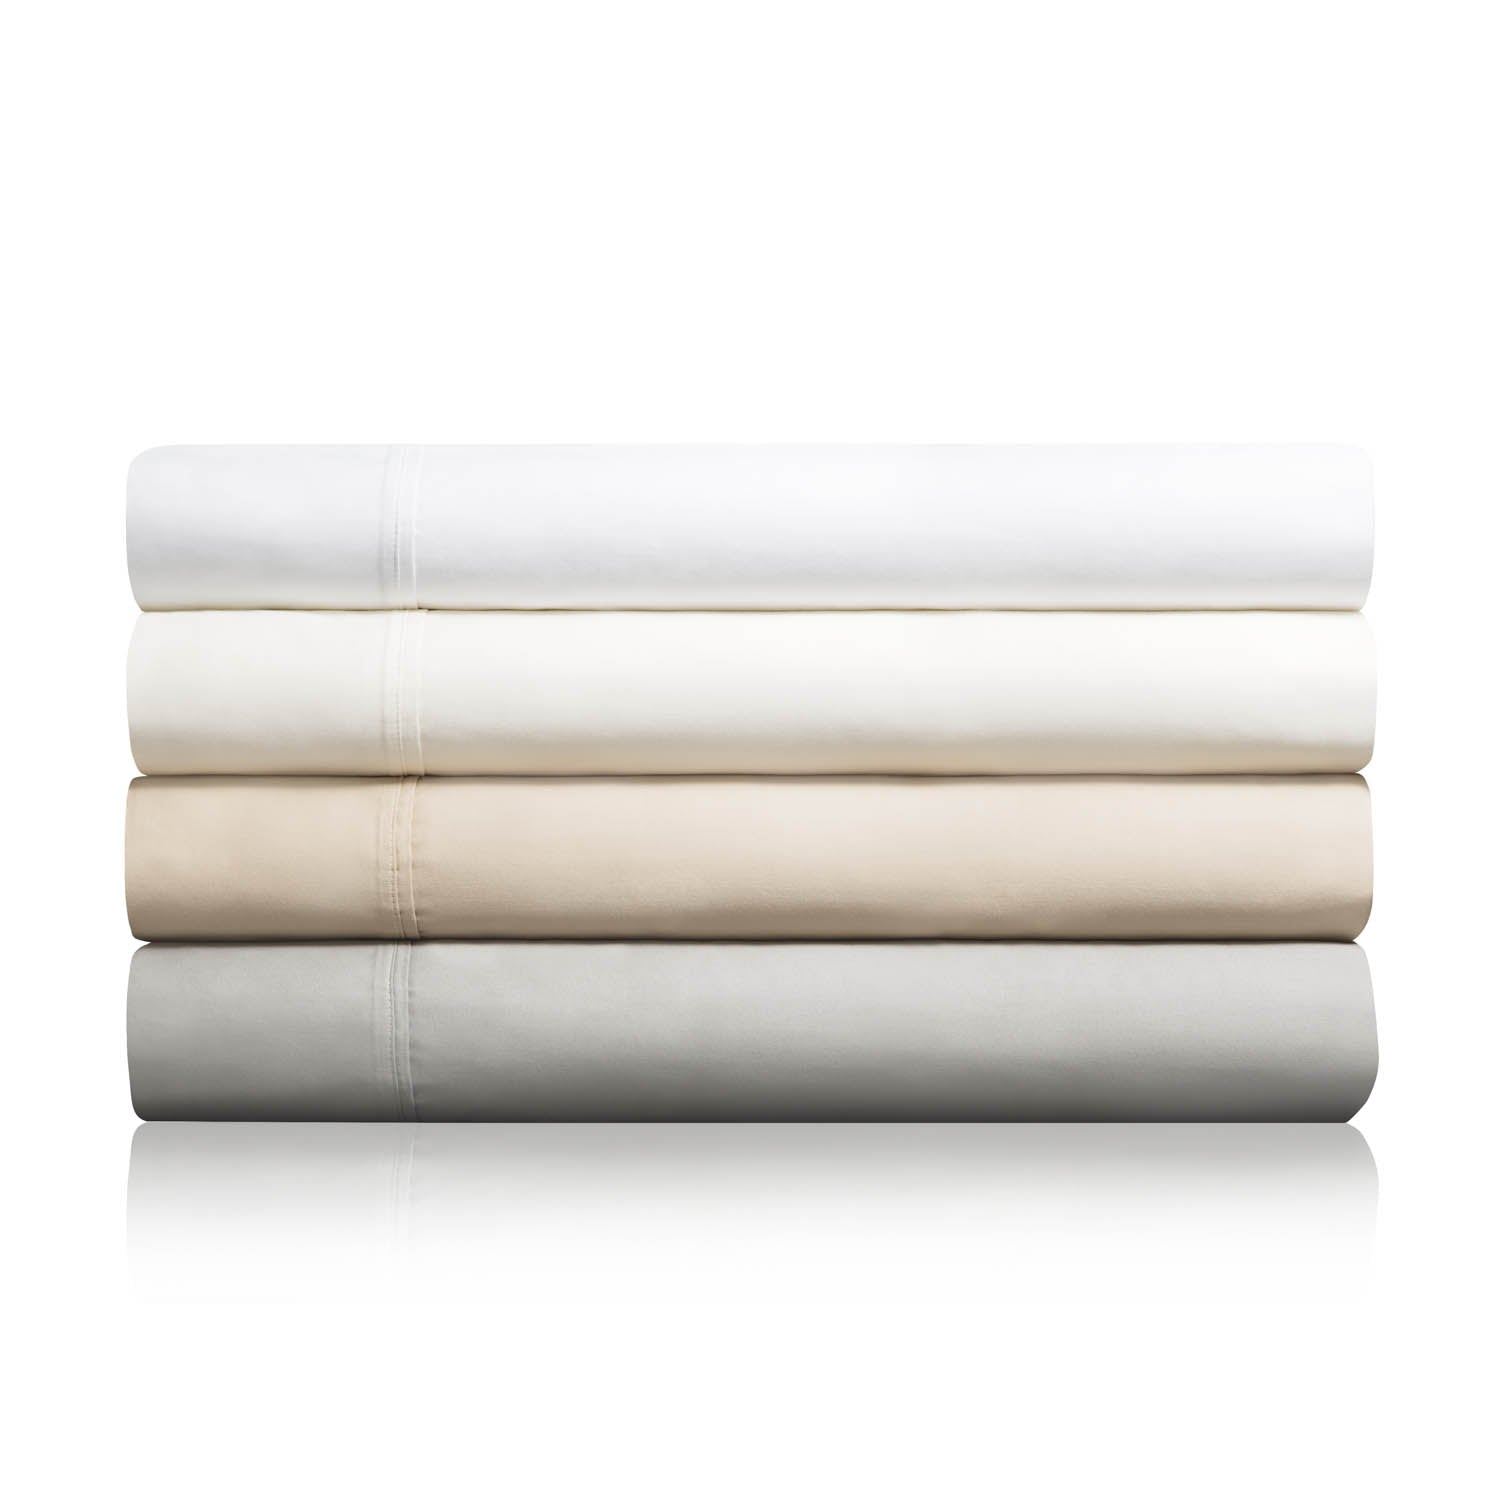 600 TC Cotton Blend Sheets - Ultimate Comfort Sleep